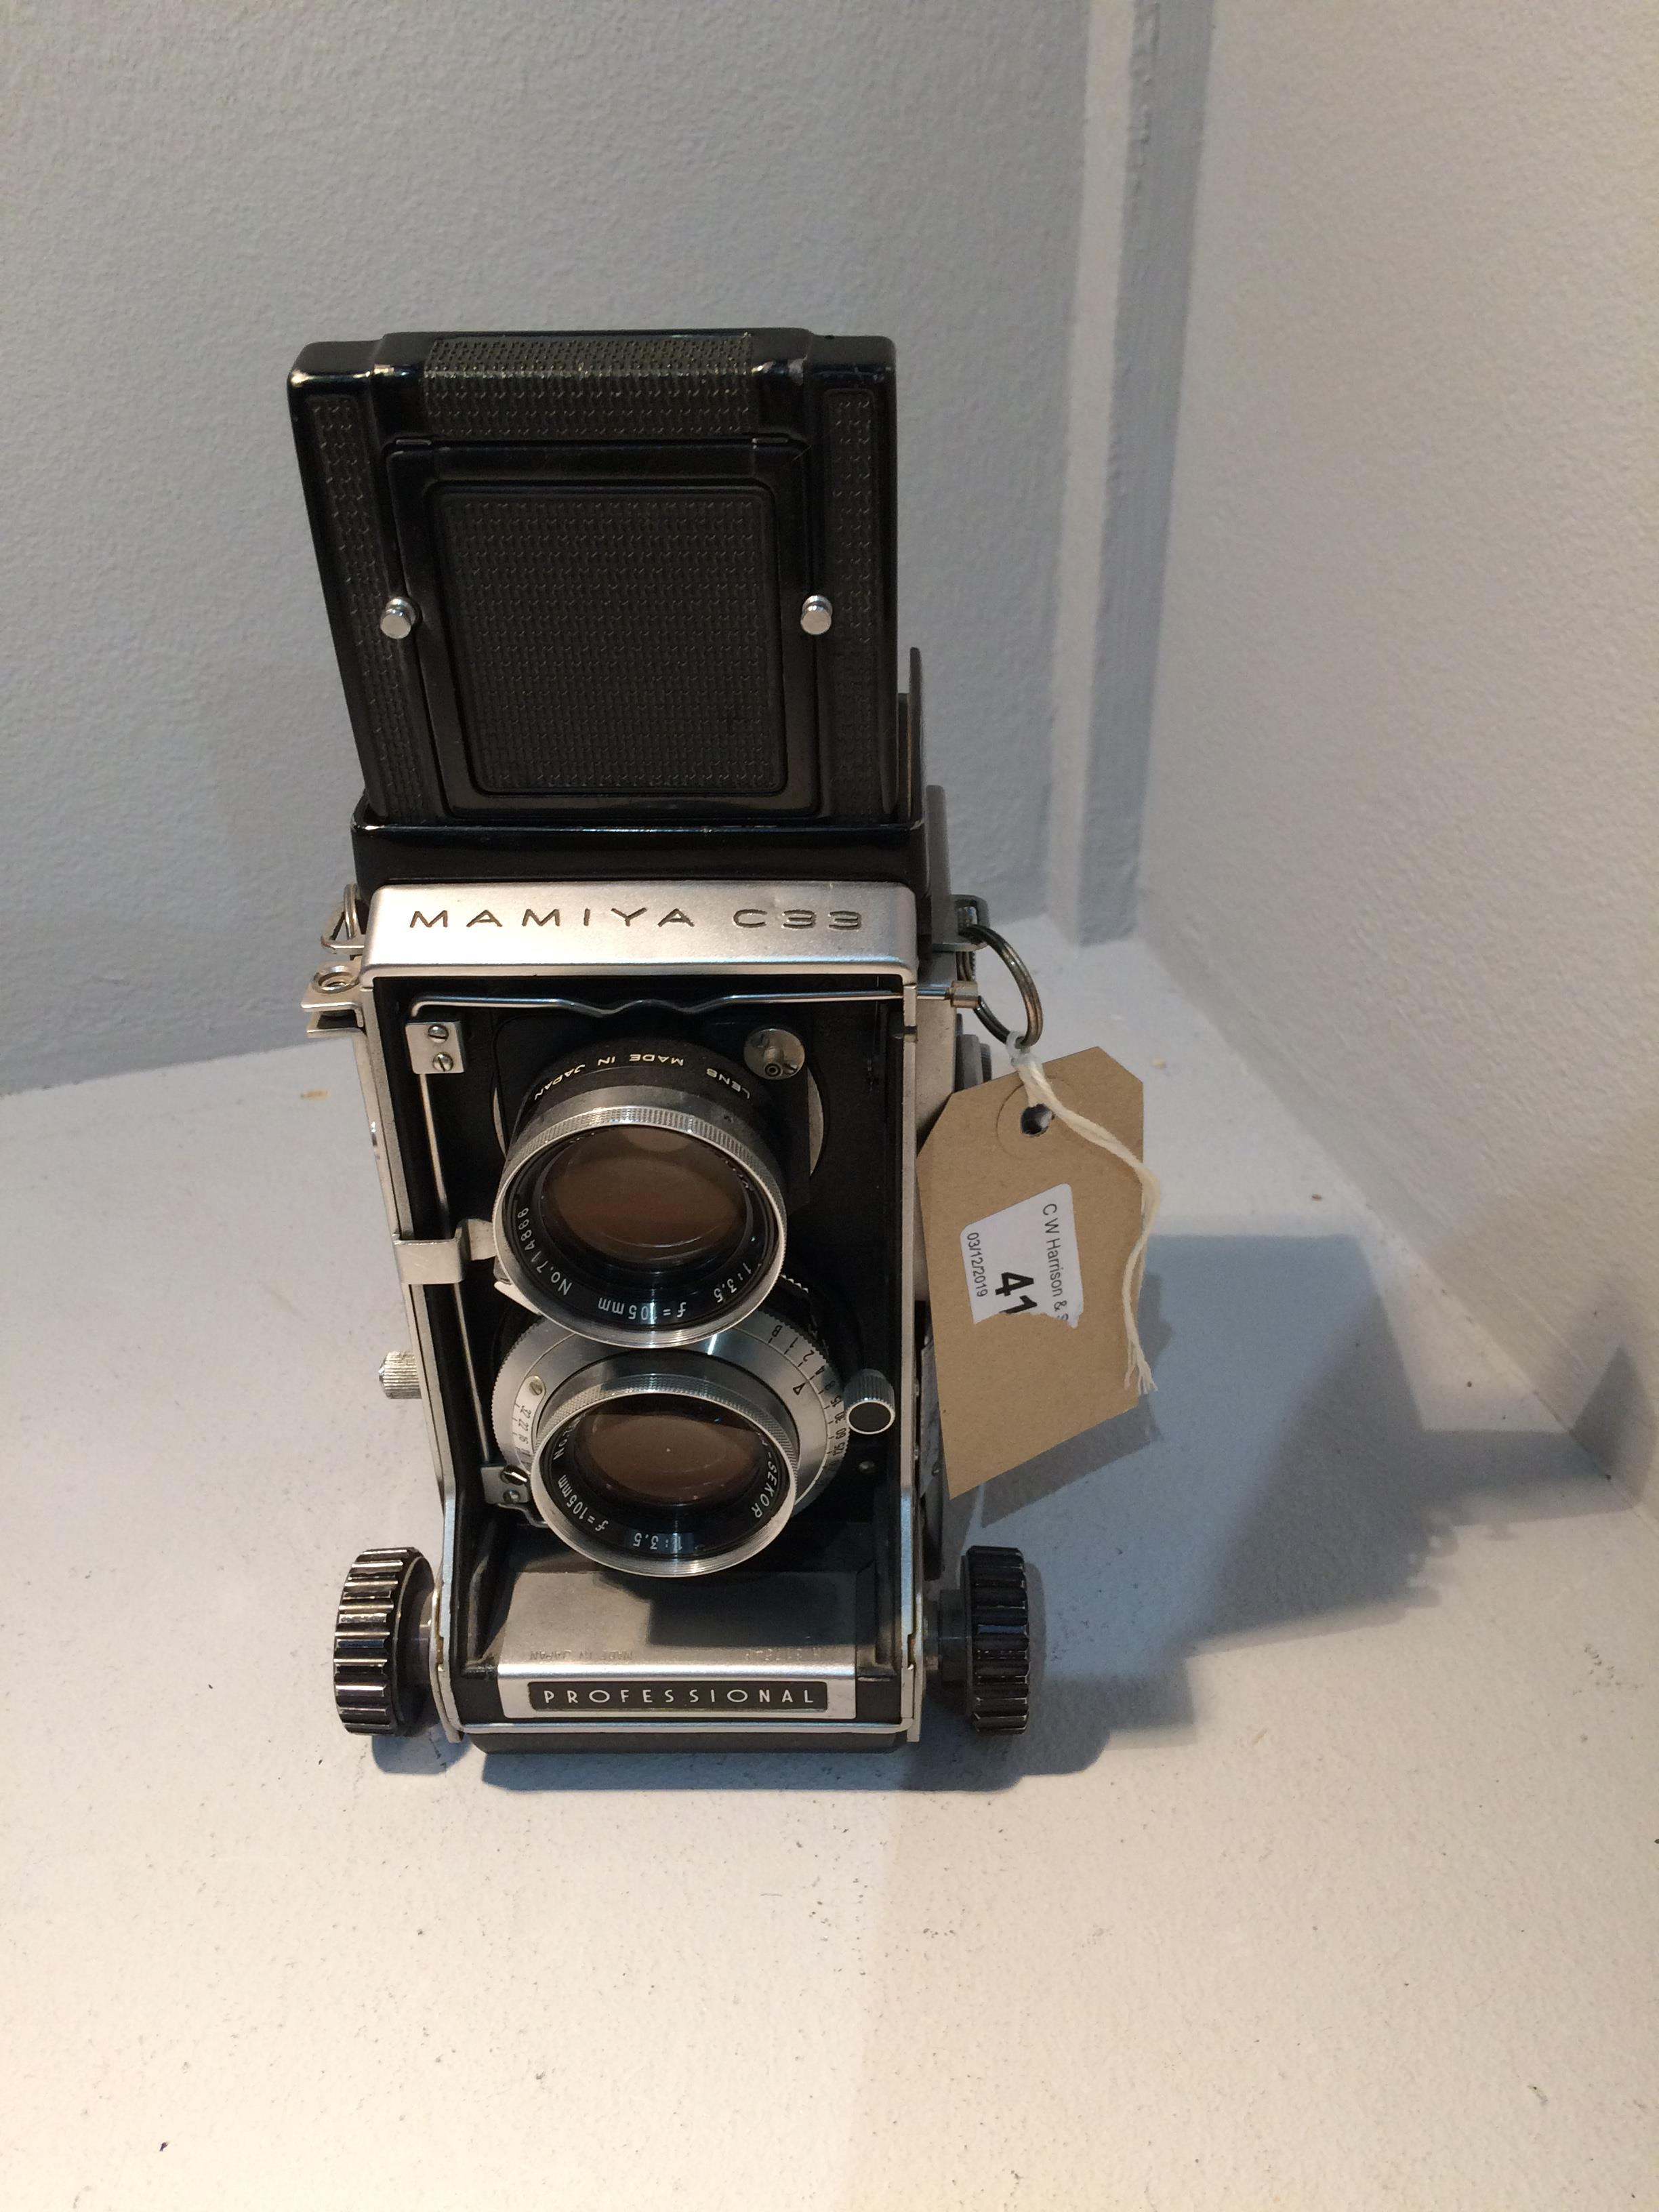 Lot 41 - Mayiya C33 Professional camera